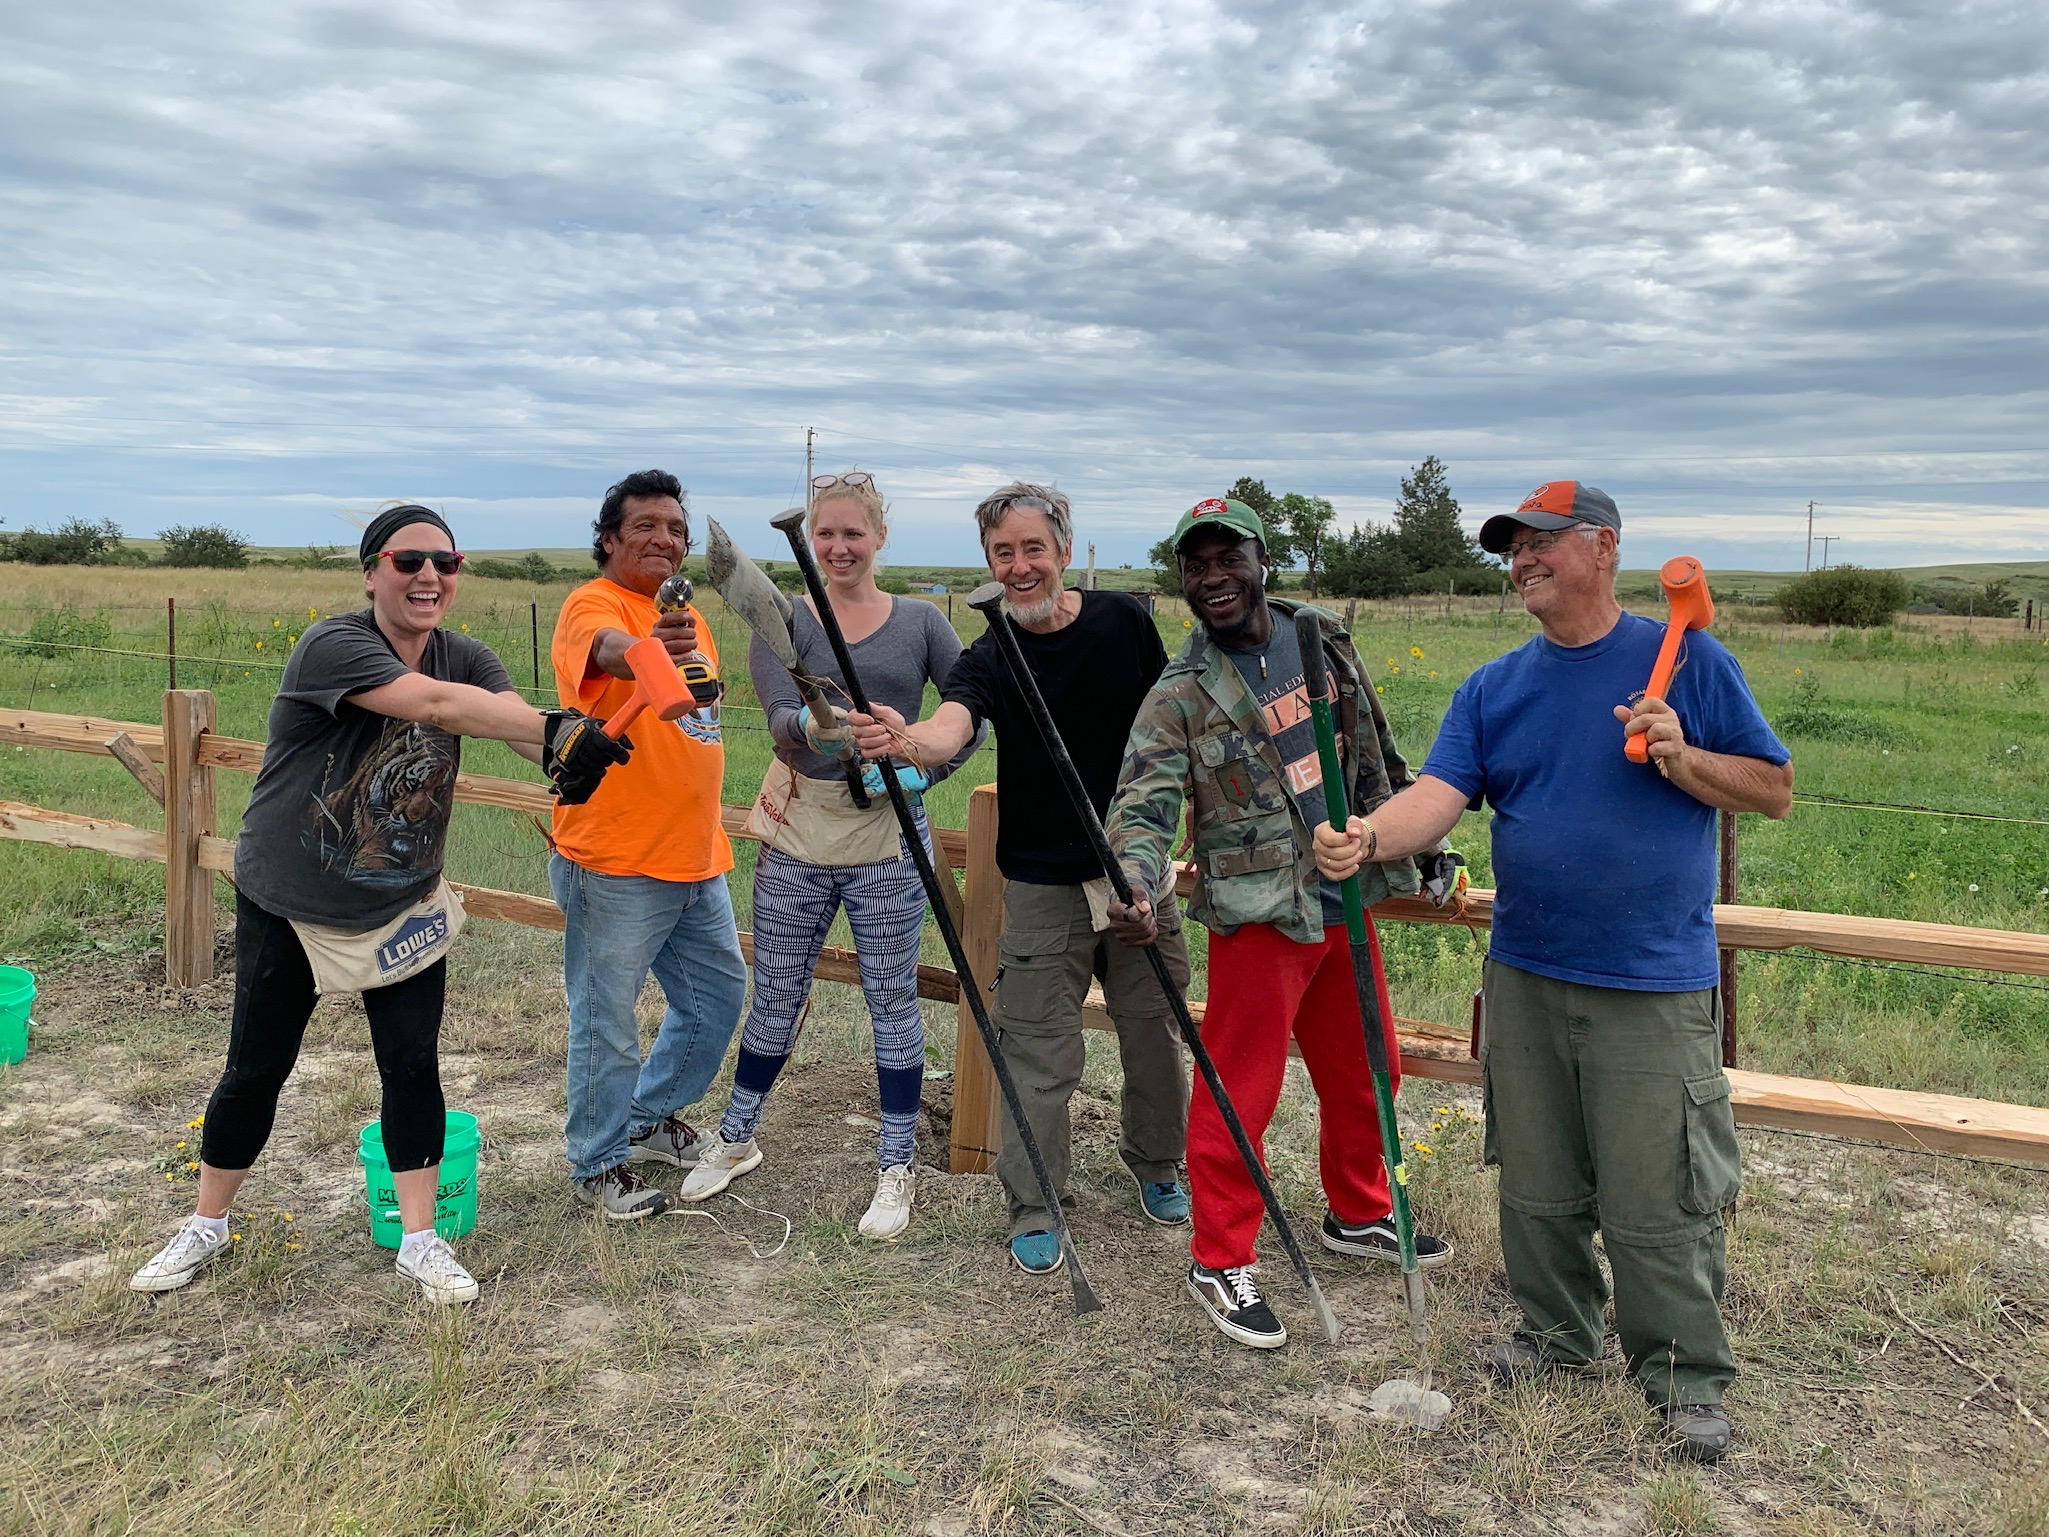 Simply Smiles volunteers and our local community partners are a vital part of the building process of the Children's Village!